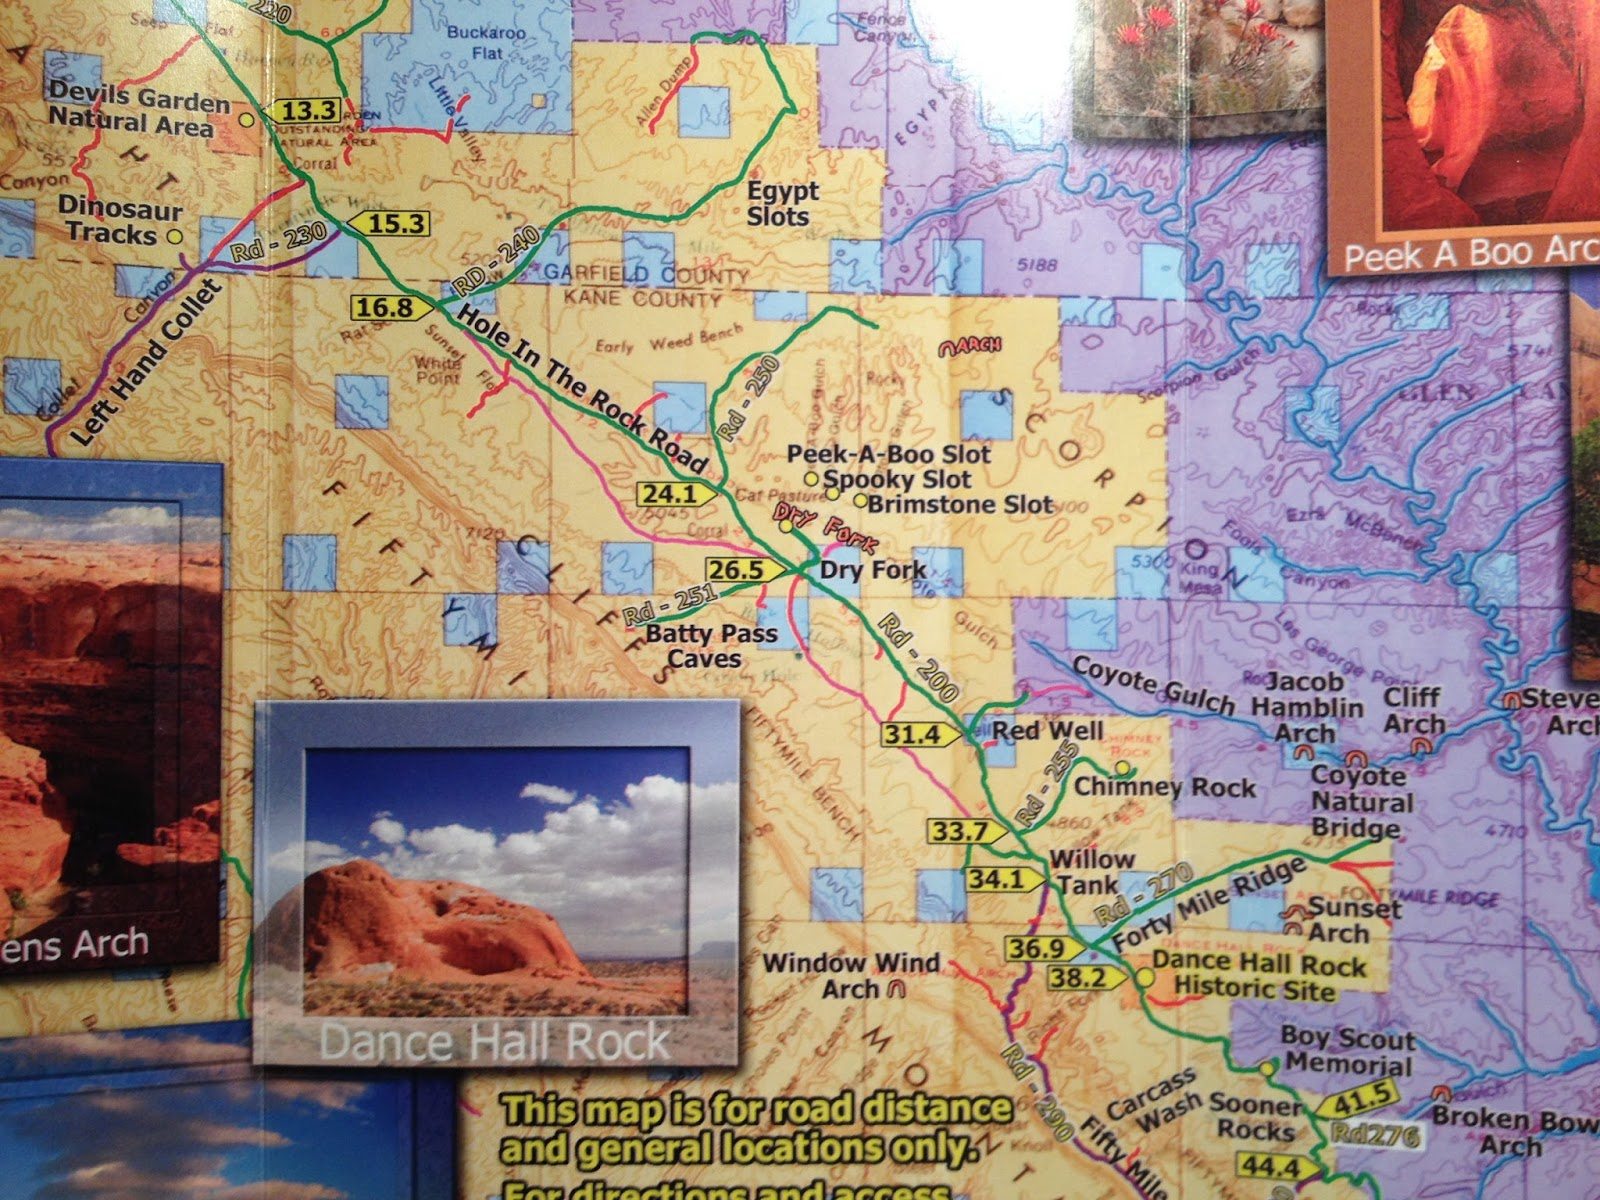 Stacie's Stuff: My 2 cents worth: Fall Break 2015 Bryce Canyon ... on yellow cat flats map, yellow cat with heart, book cliffs utah map,